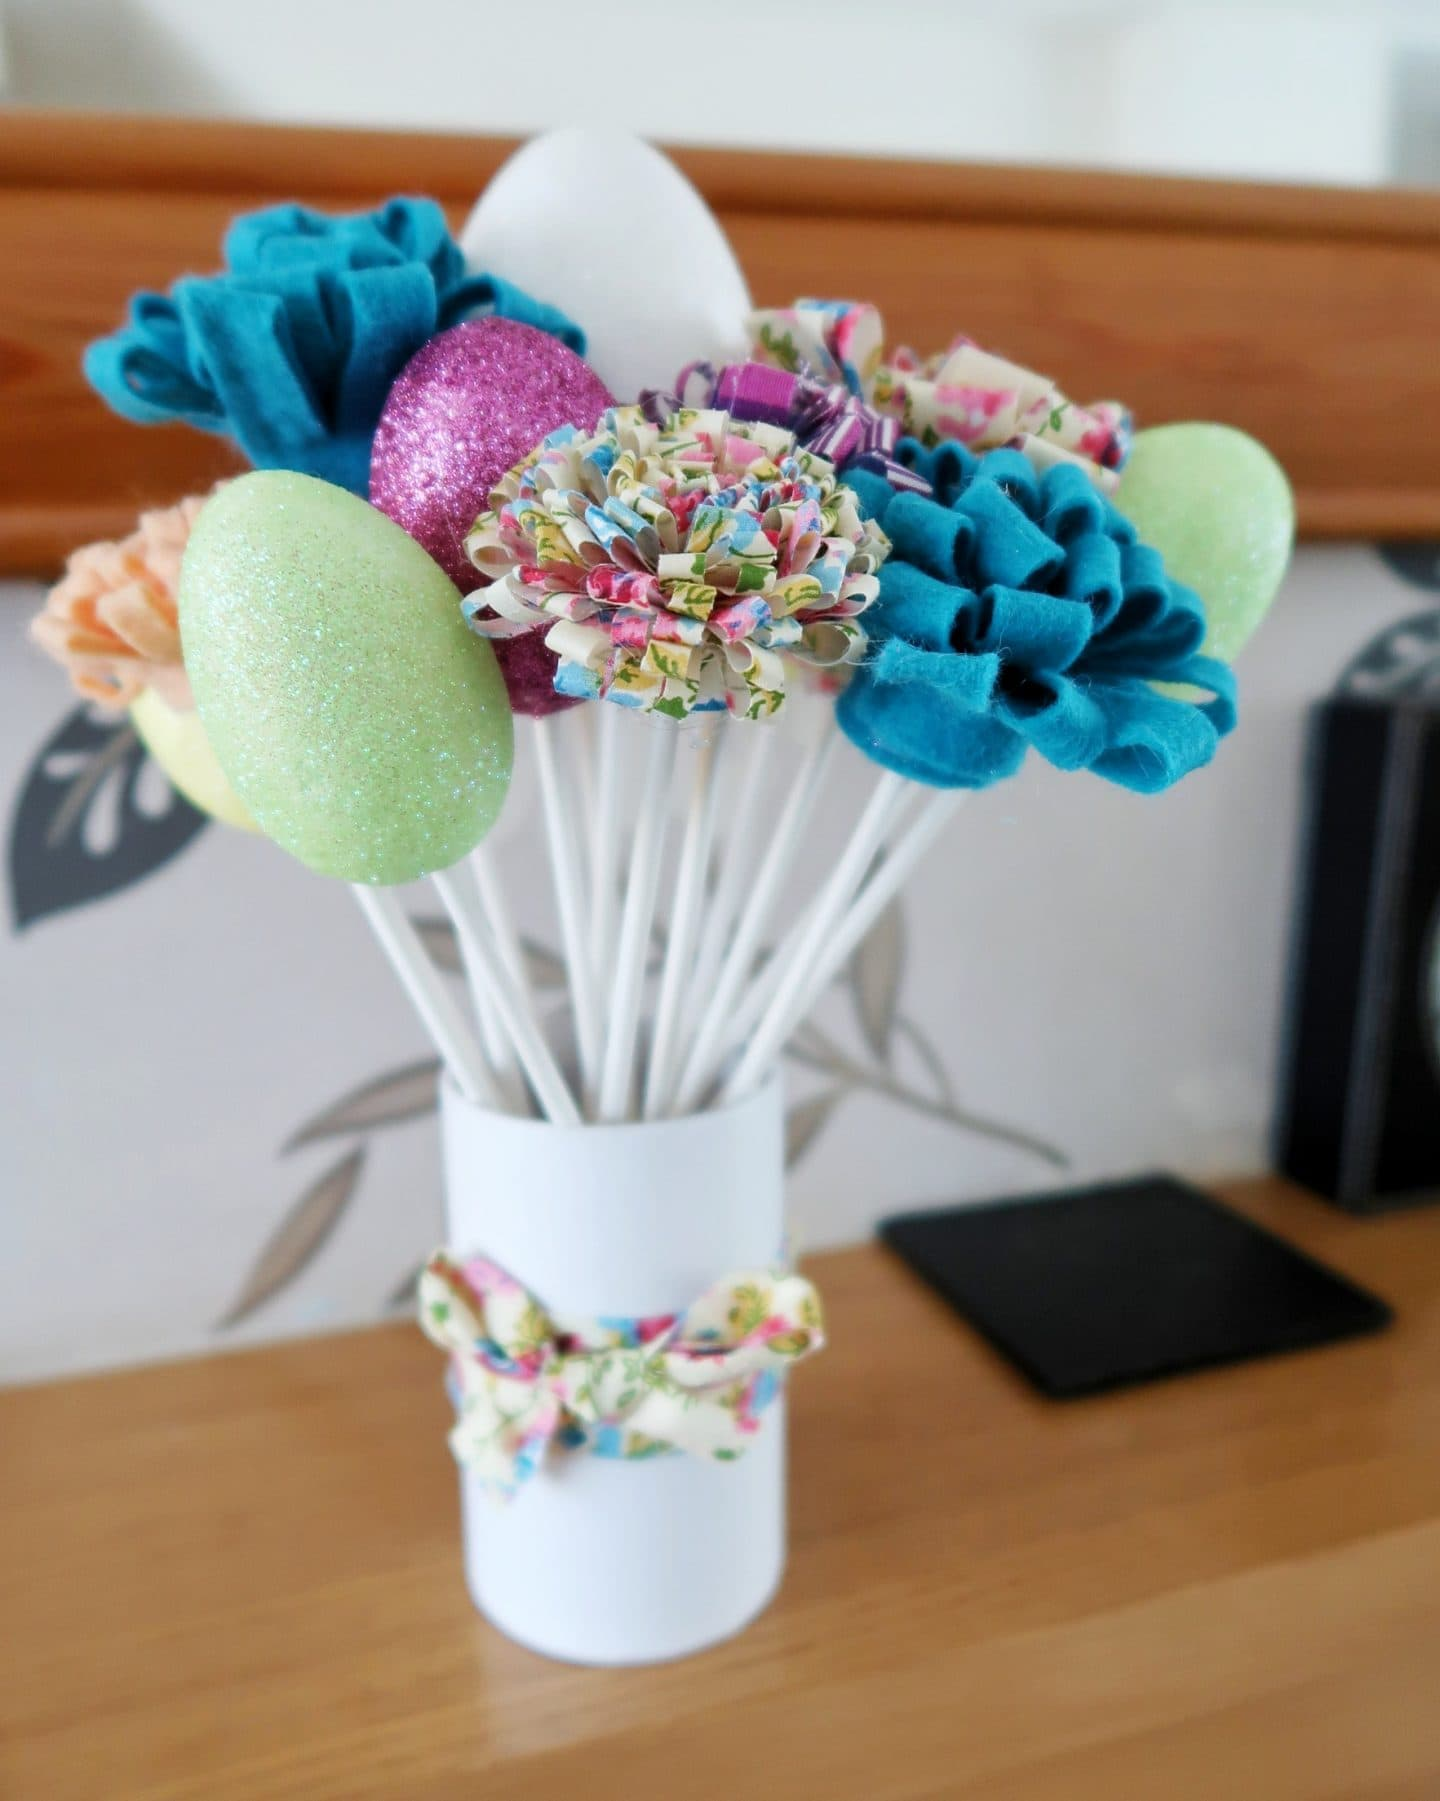 Final Easter decoration with fabric flowers and glitter eggs